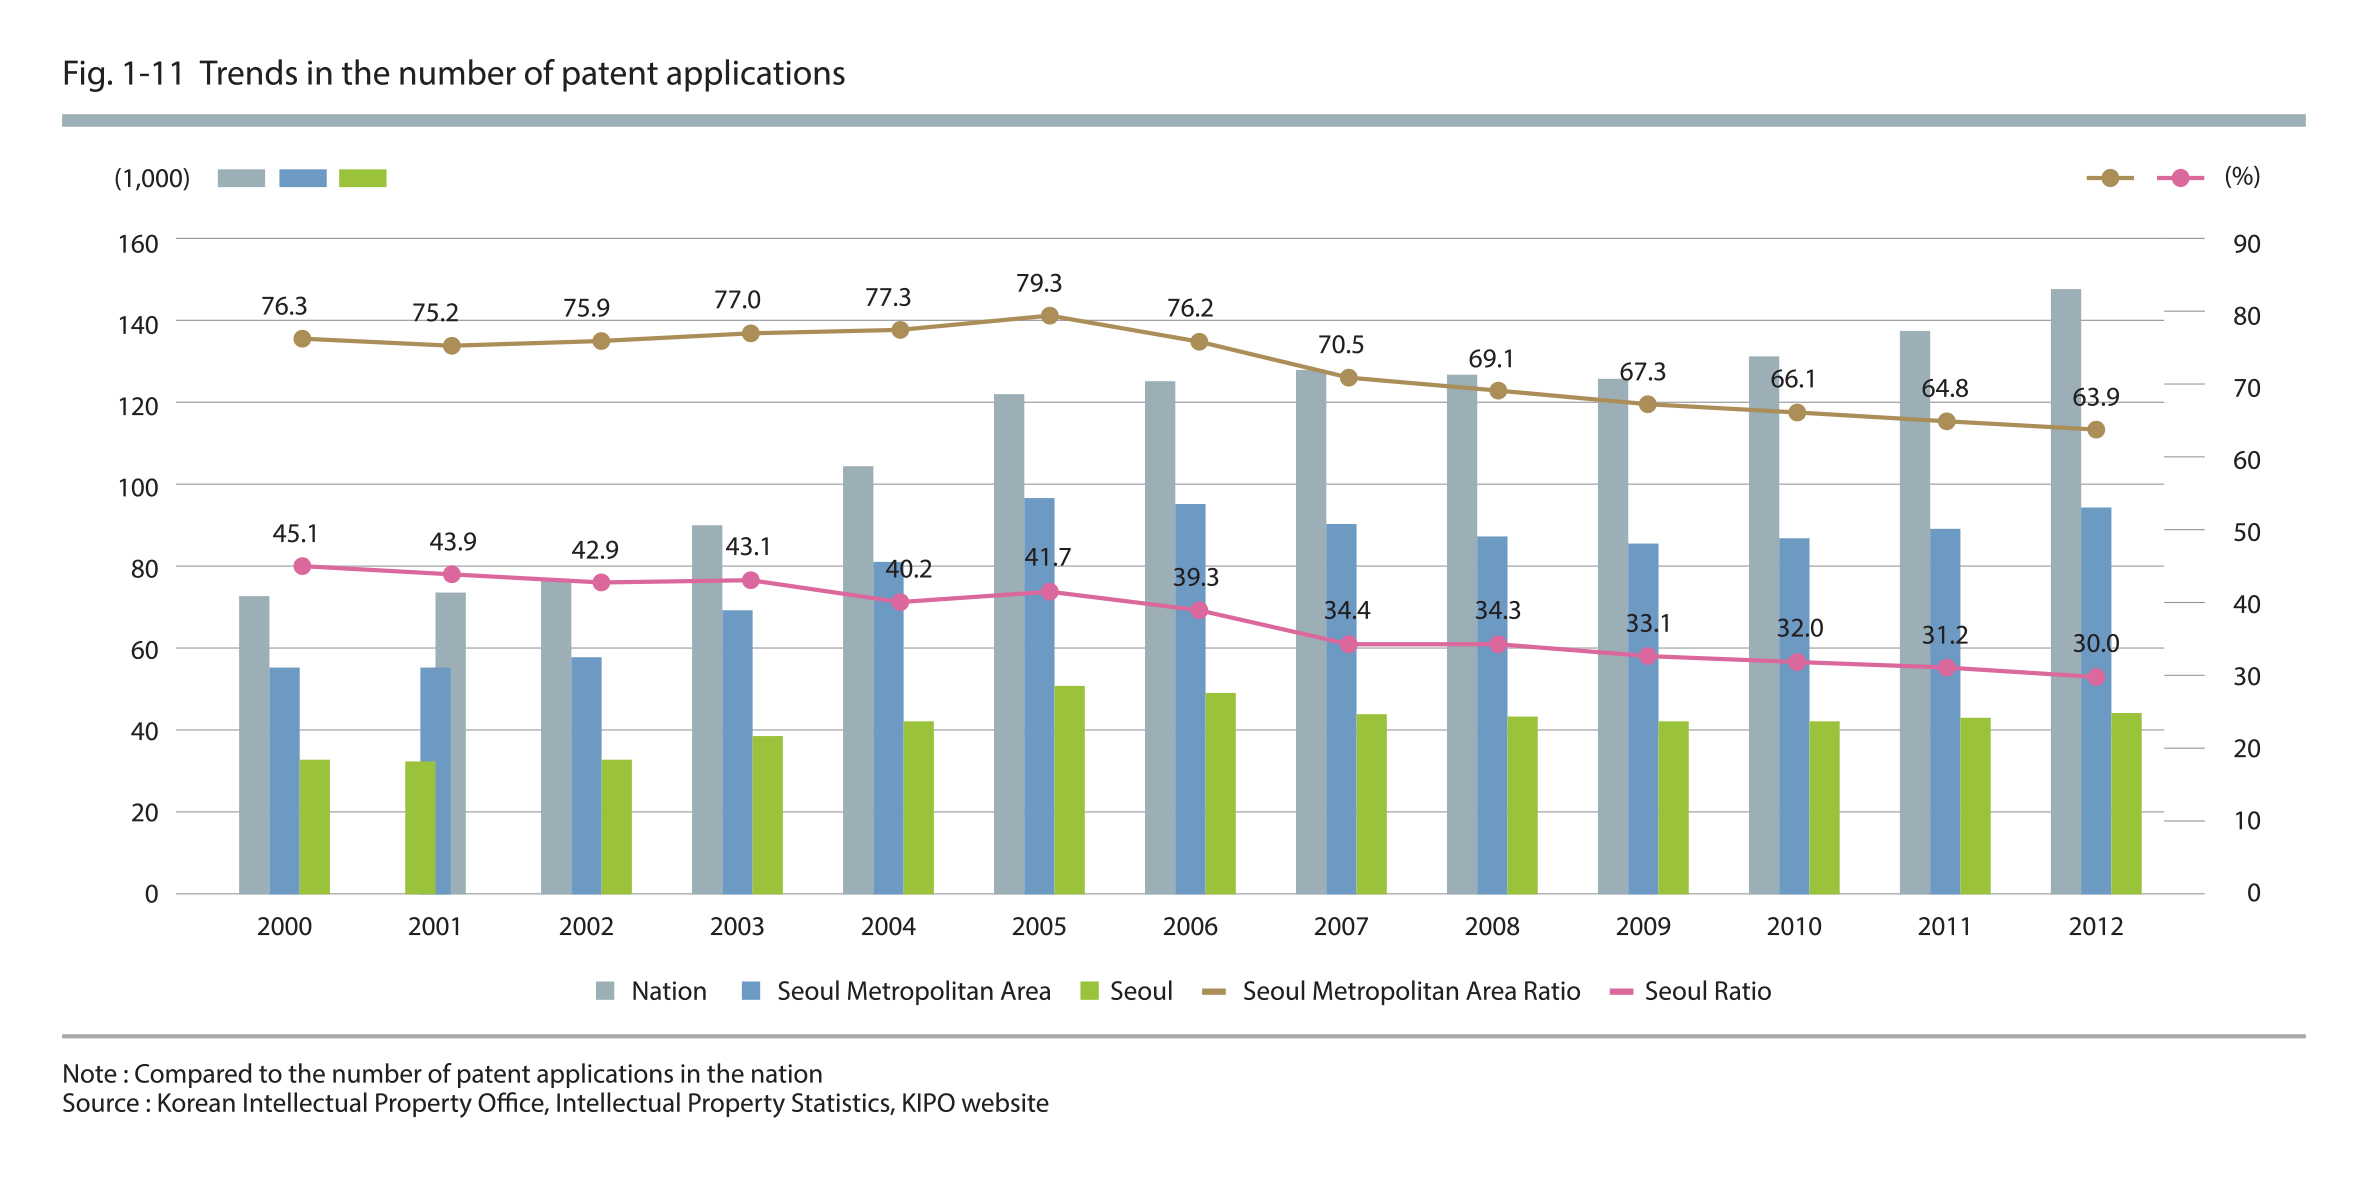 Trends in the number of patent applications